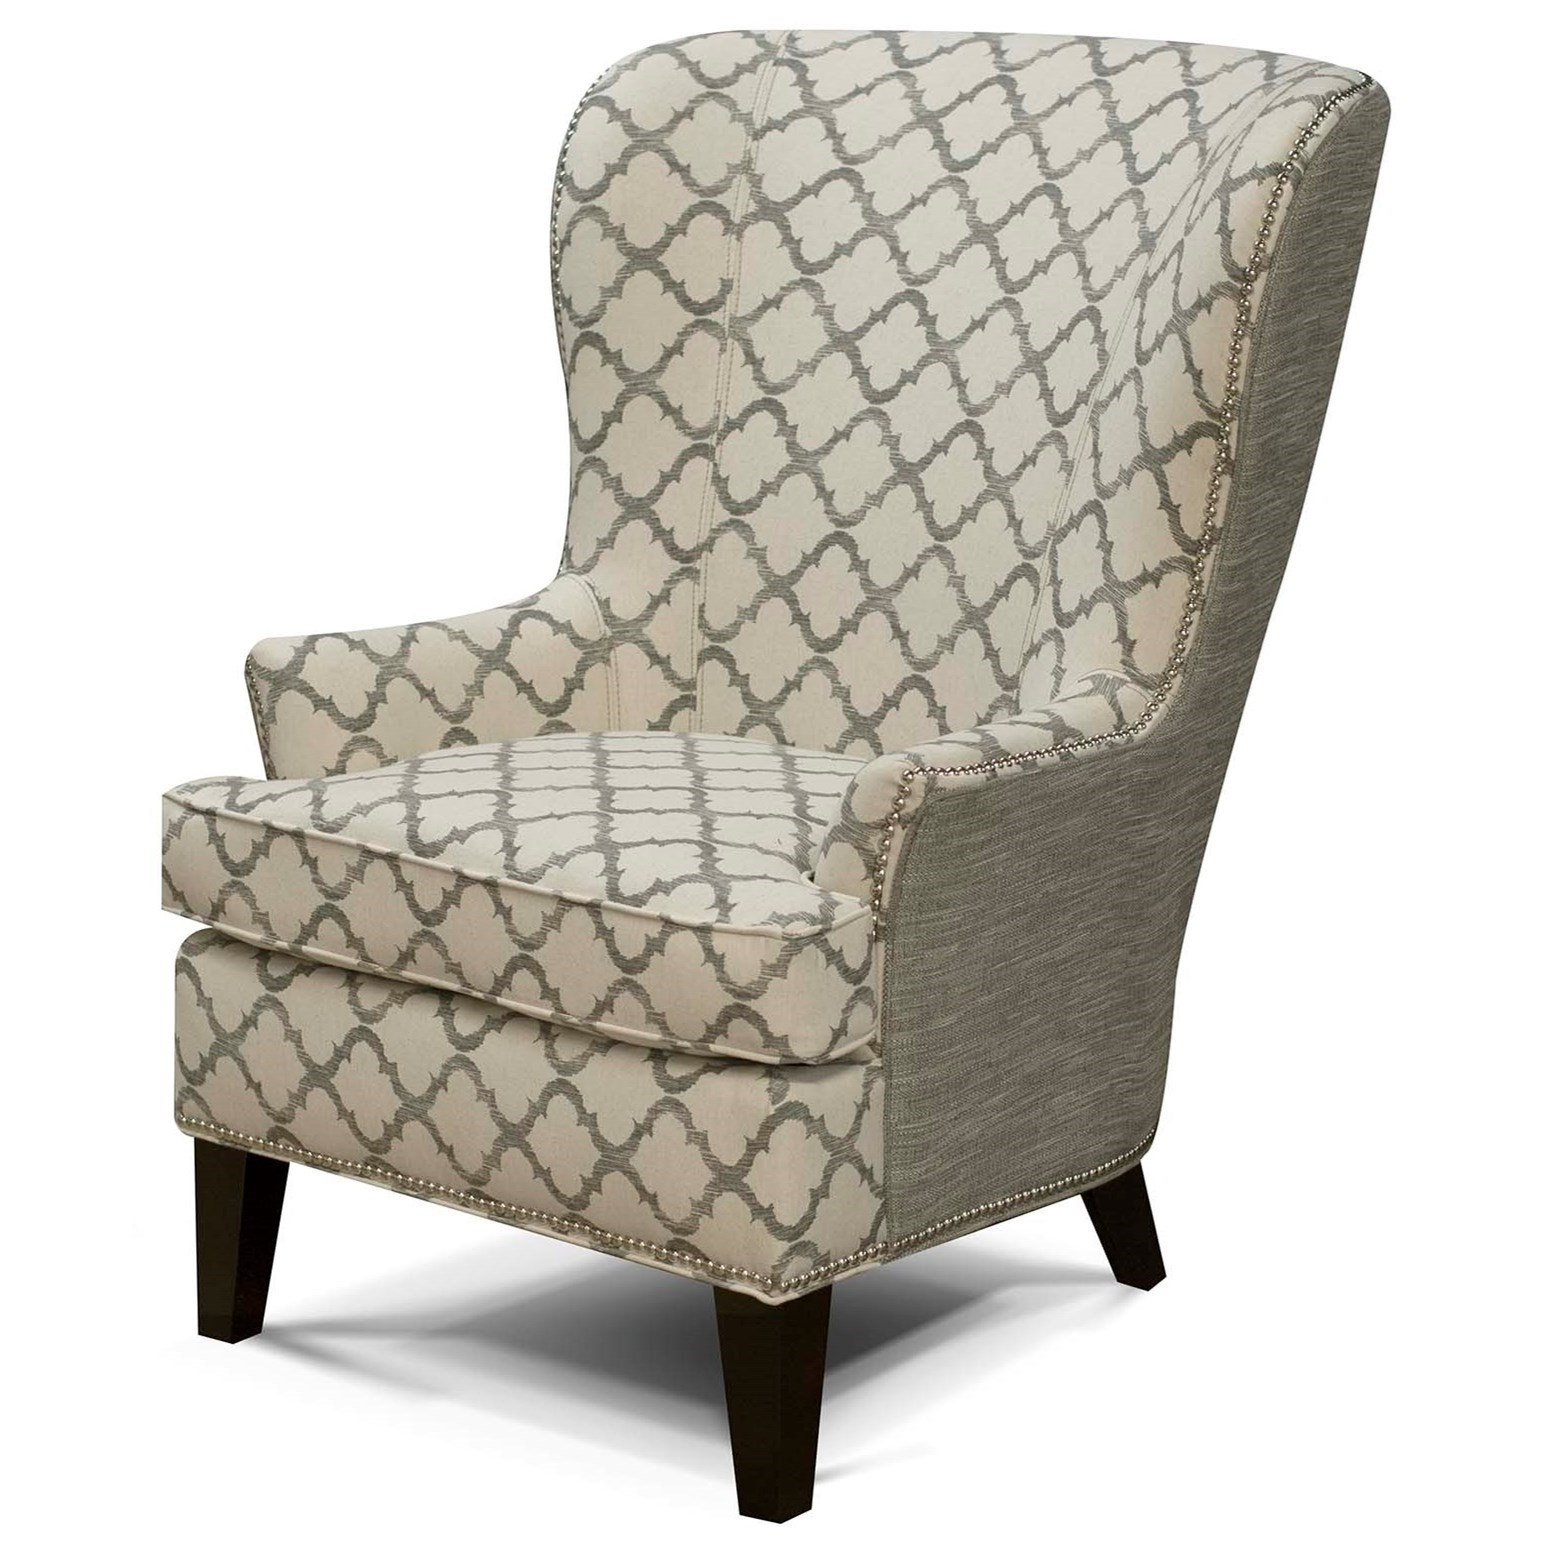 Smith Living Room Arm Chair by England at EFO Furniture Outlet